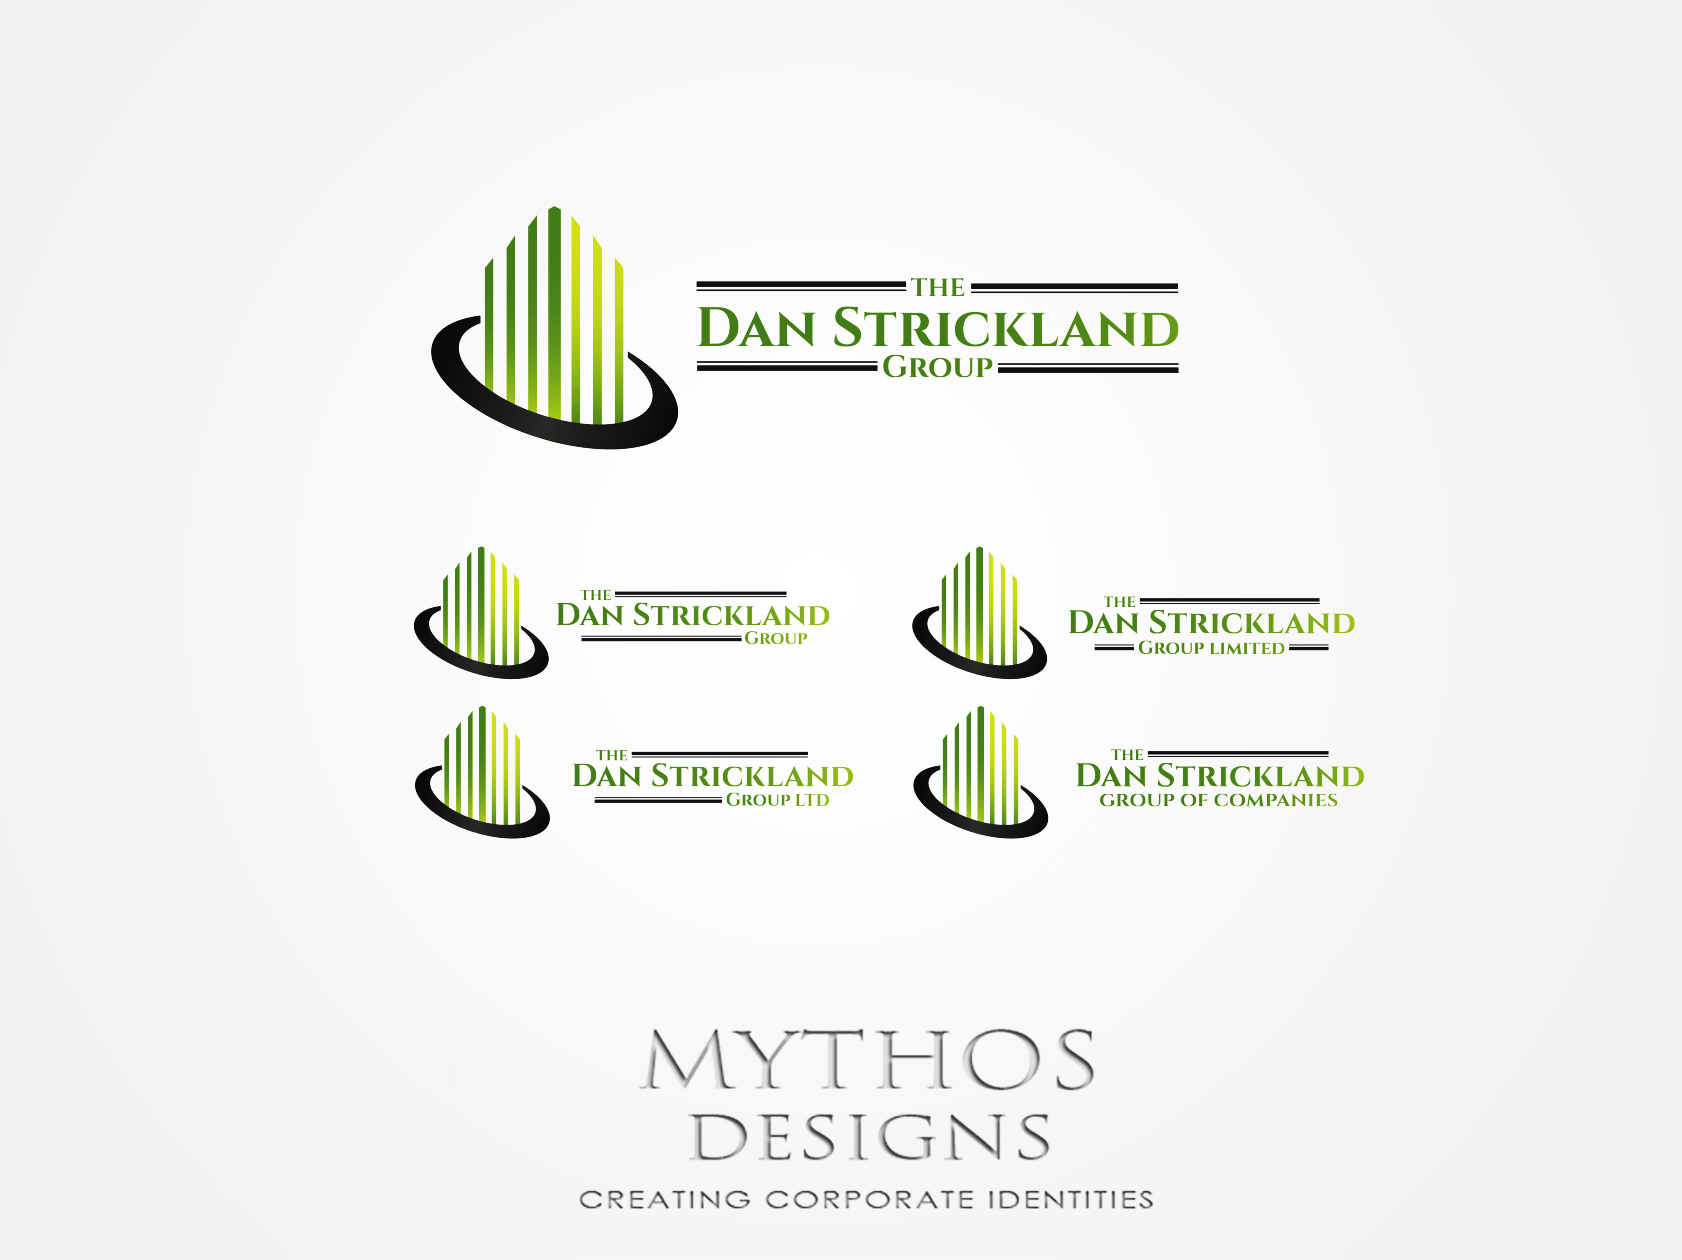 Logo Design by Mythos Designs - Entry No. 101 in the Logo Design Contest Creative Logo Design for The Dan Strickland Group.